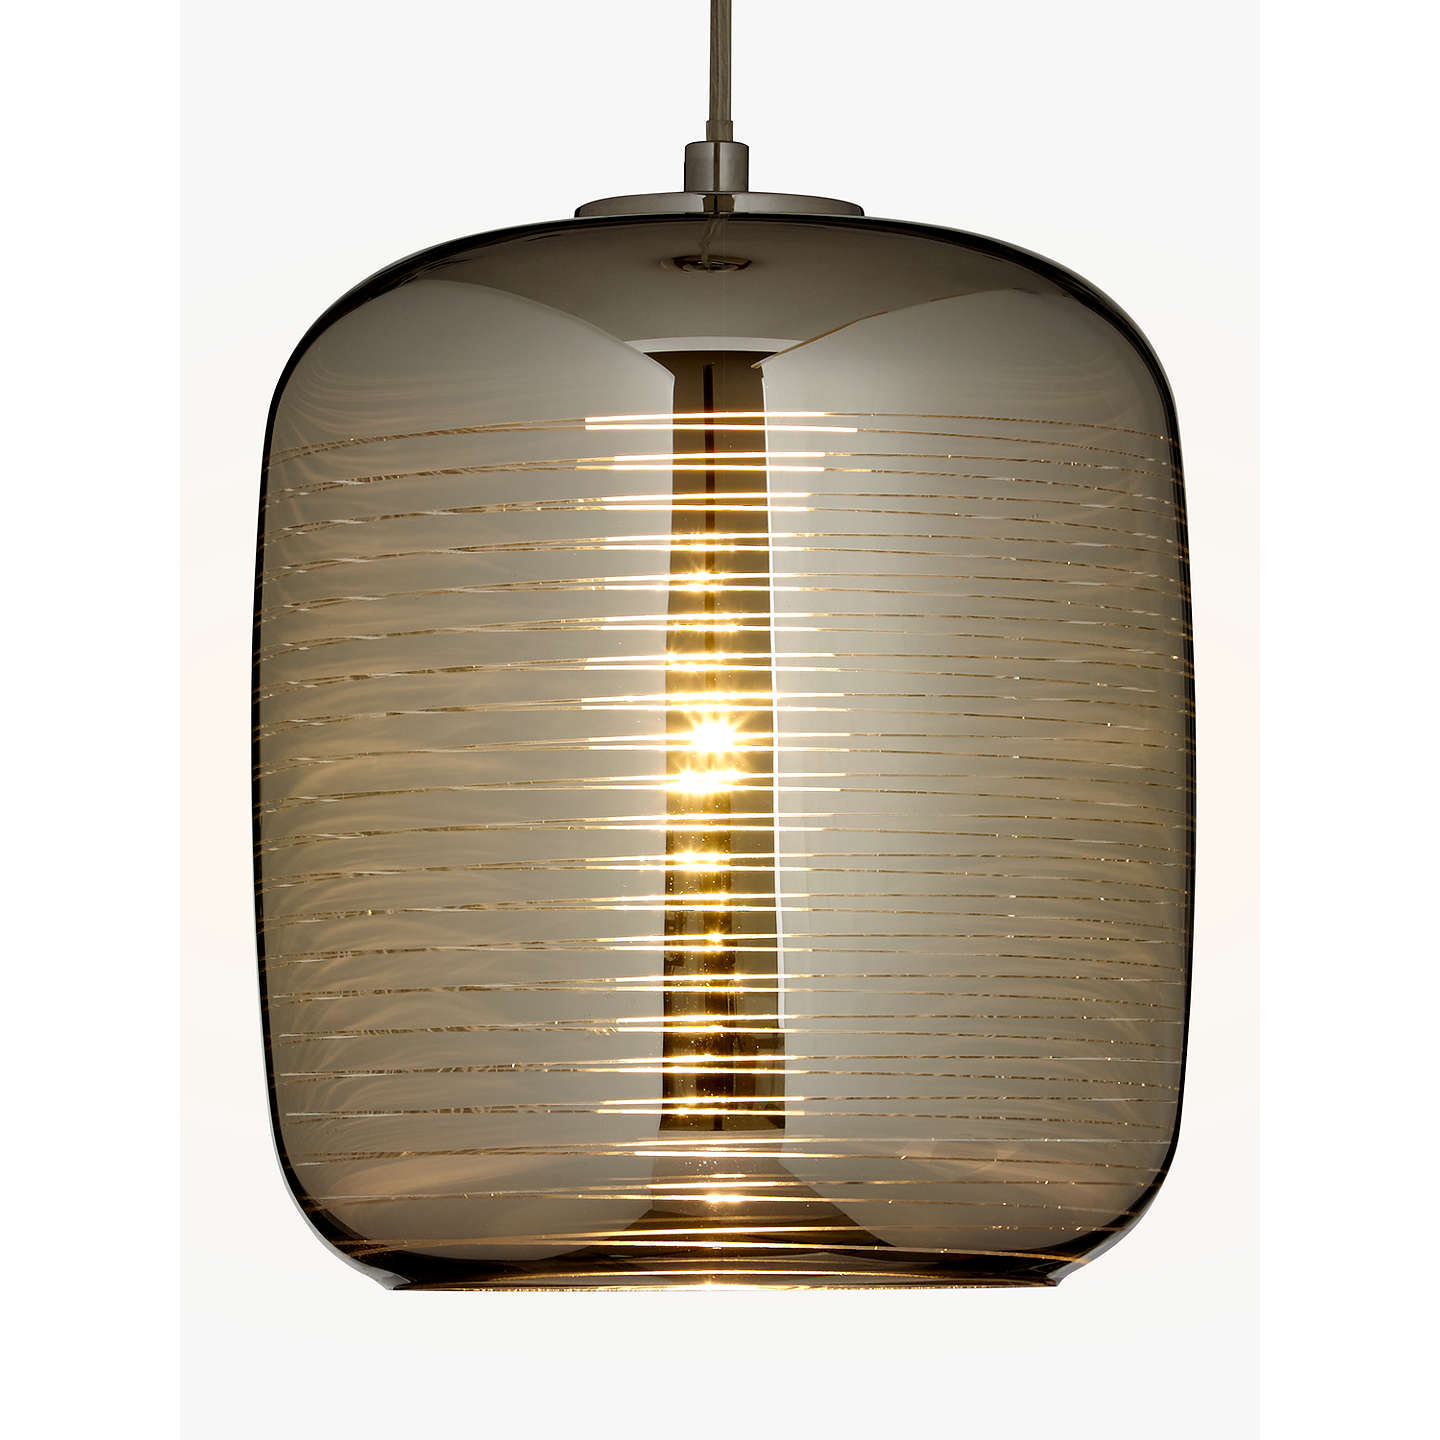 John lewis pluto horizon stripe pendant ceiling light at john lewis buyjohn lewis pluto horizon stripe pendant ceiling light online at johnlewis mozeypictures